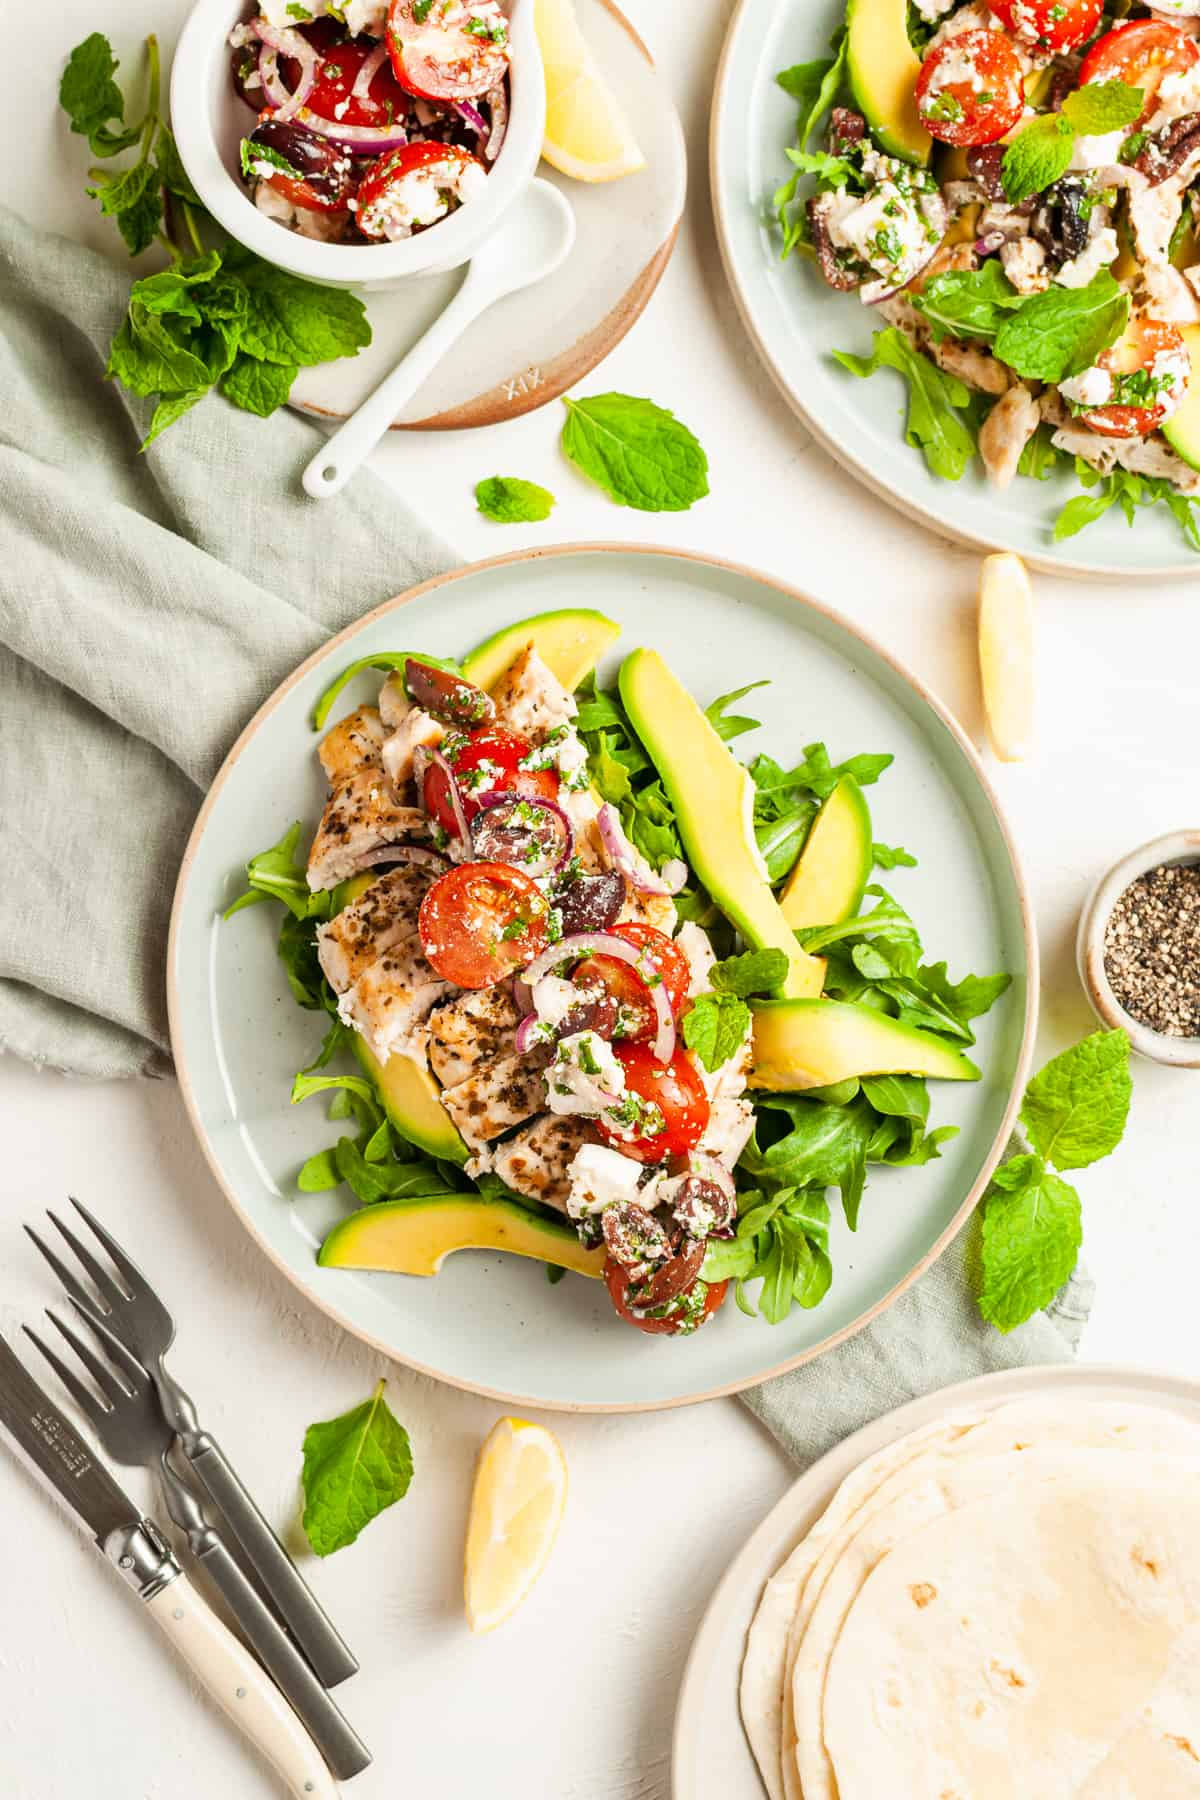 Round plate topped with salad topped with chicken and another dish of salad on the side.